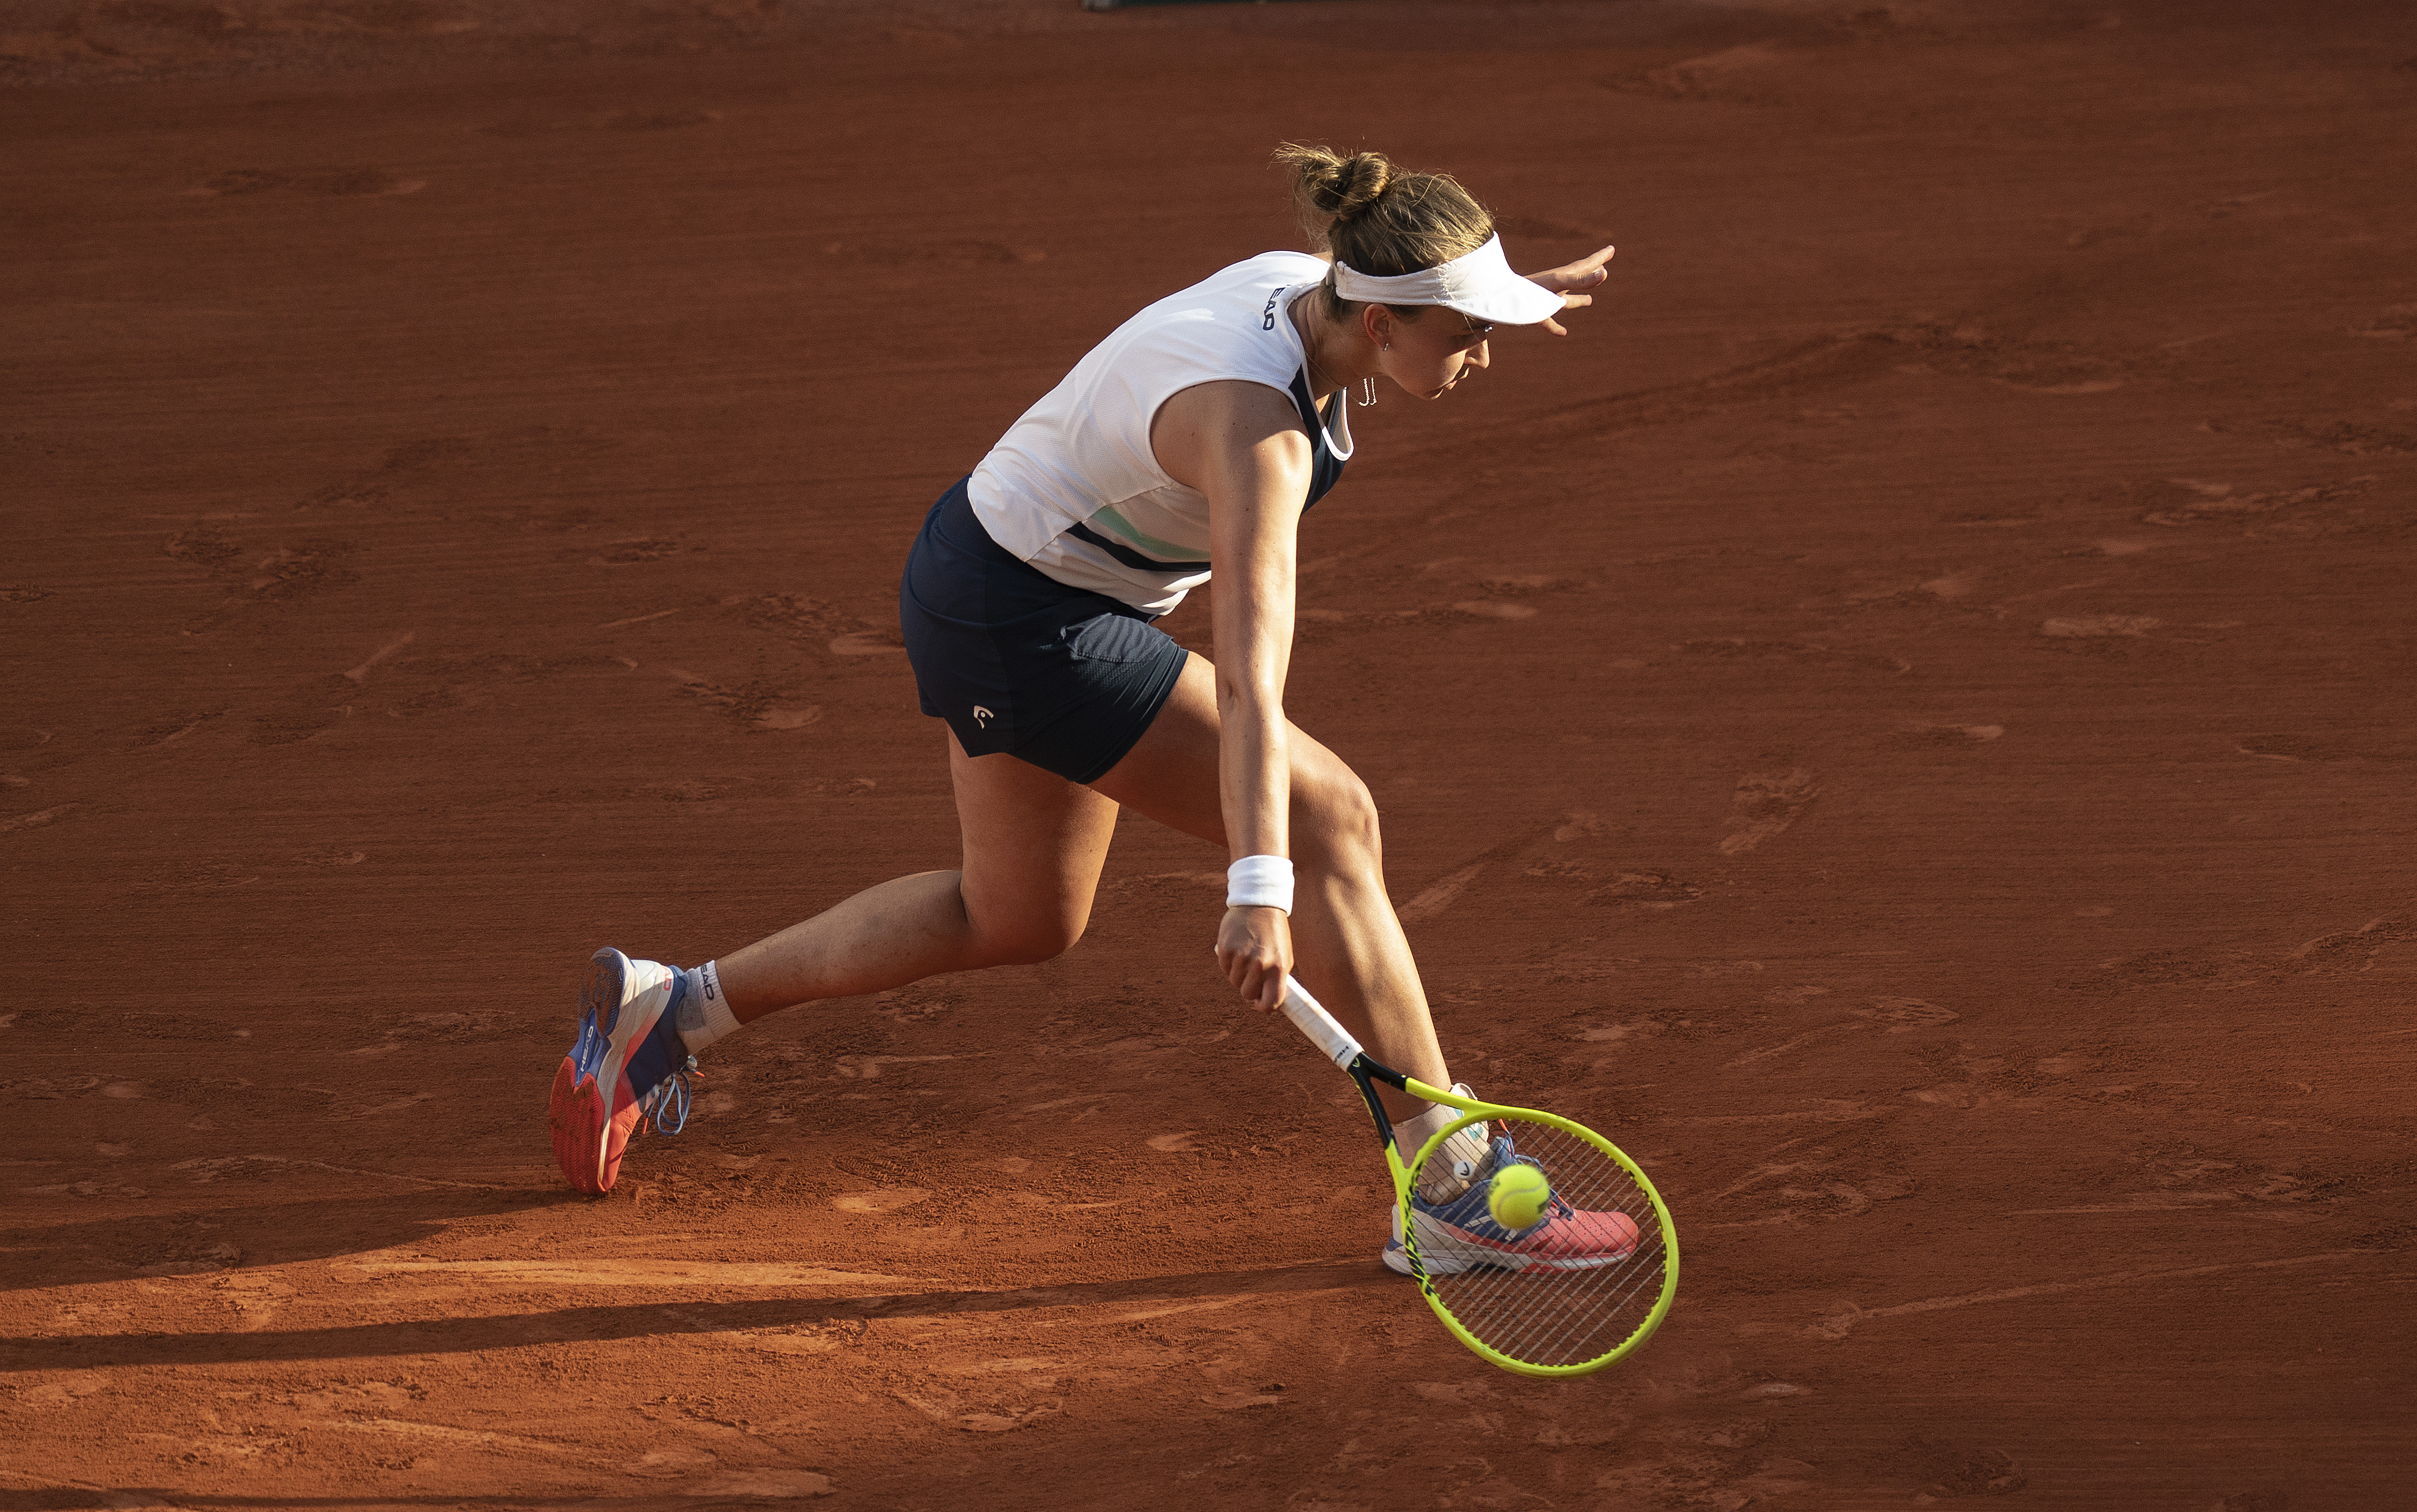 Jun 10, 2021; Paris, France; Barbora Krejcikova (CZE) in action during her semifinal match against Maria Sakkari (GRE) on day 12 of the French Open at Stade Roland Garros. Mandatory Credit: Susan Mullane-USA TODAY Sports